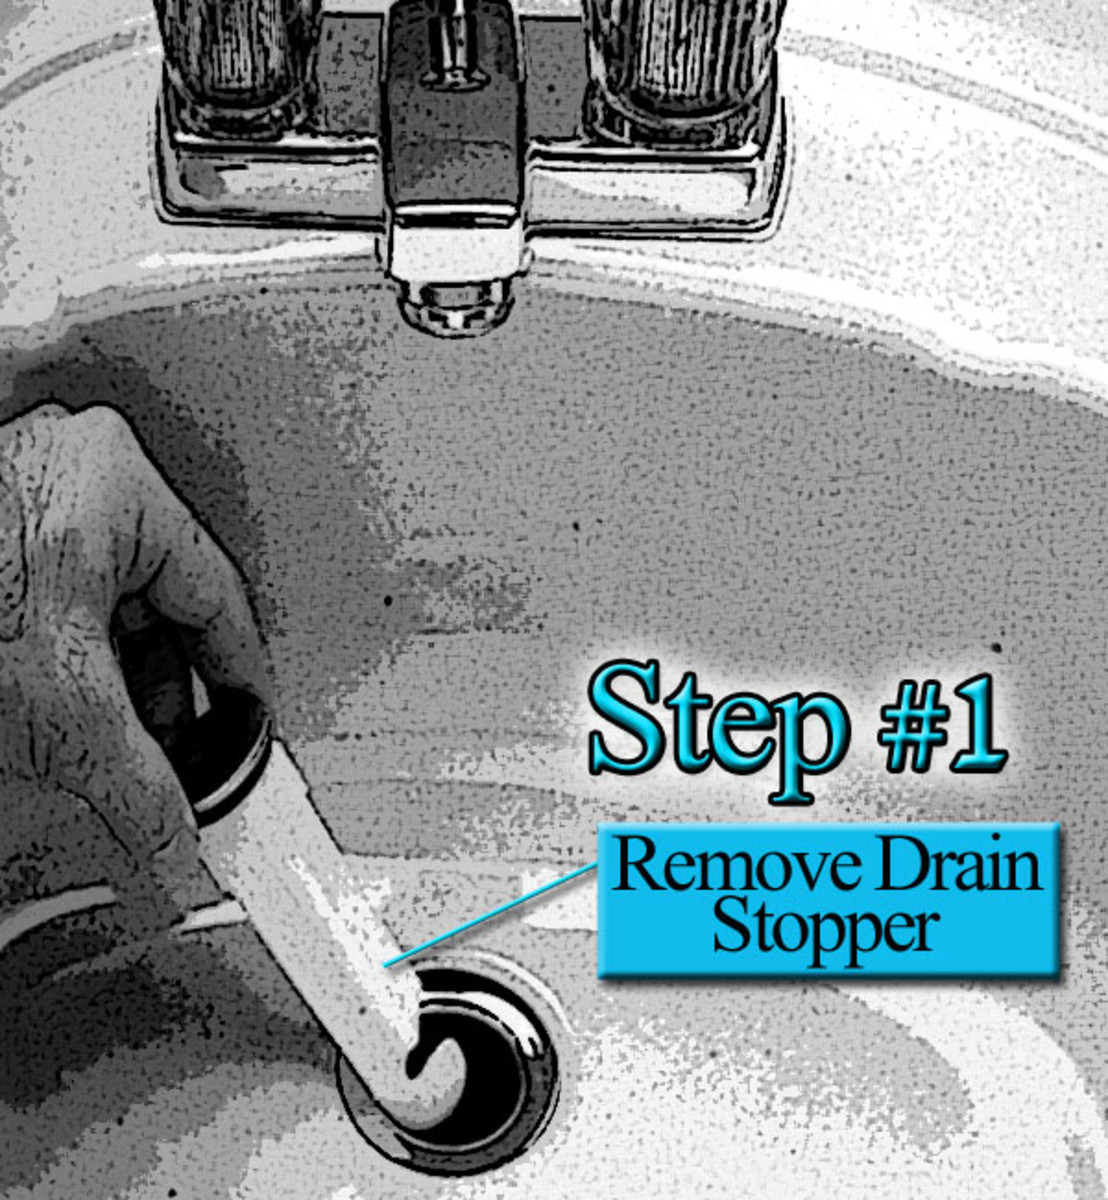 Step #1 remove drain stopper